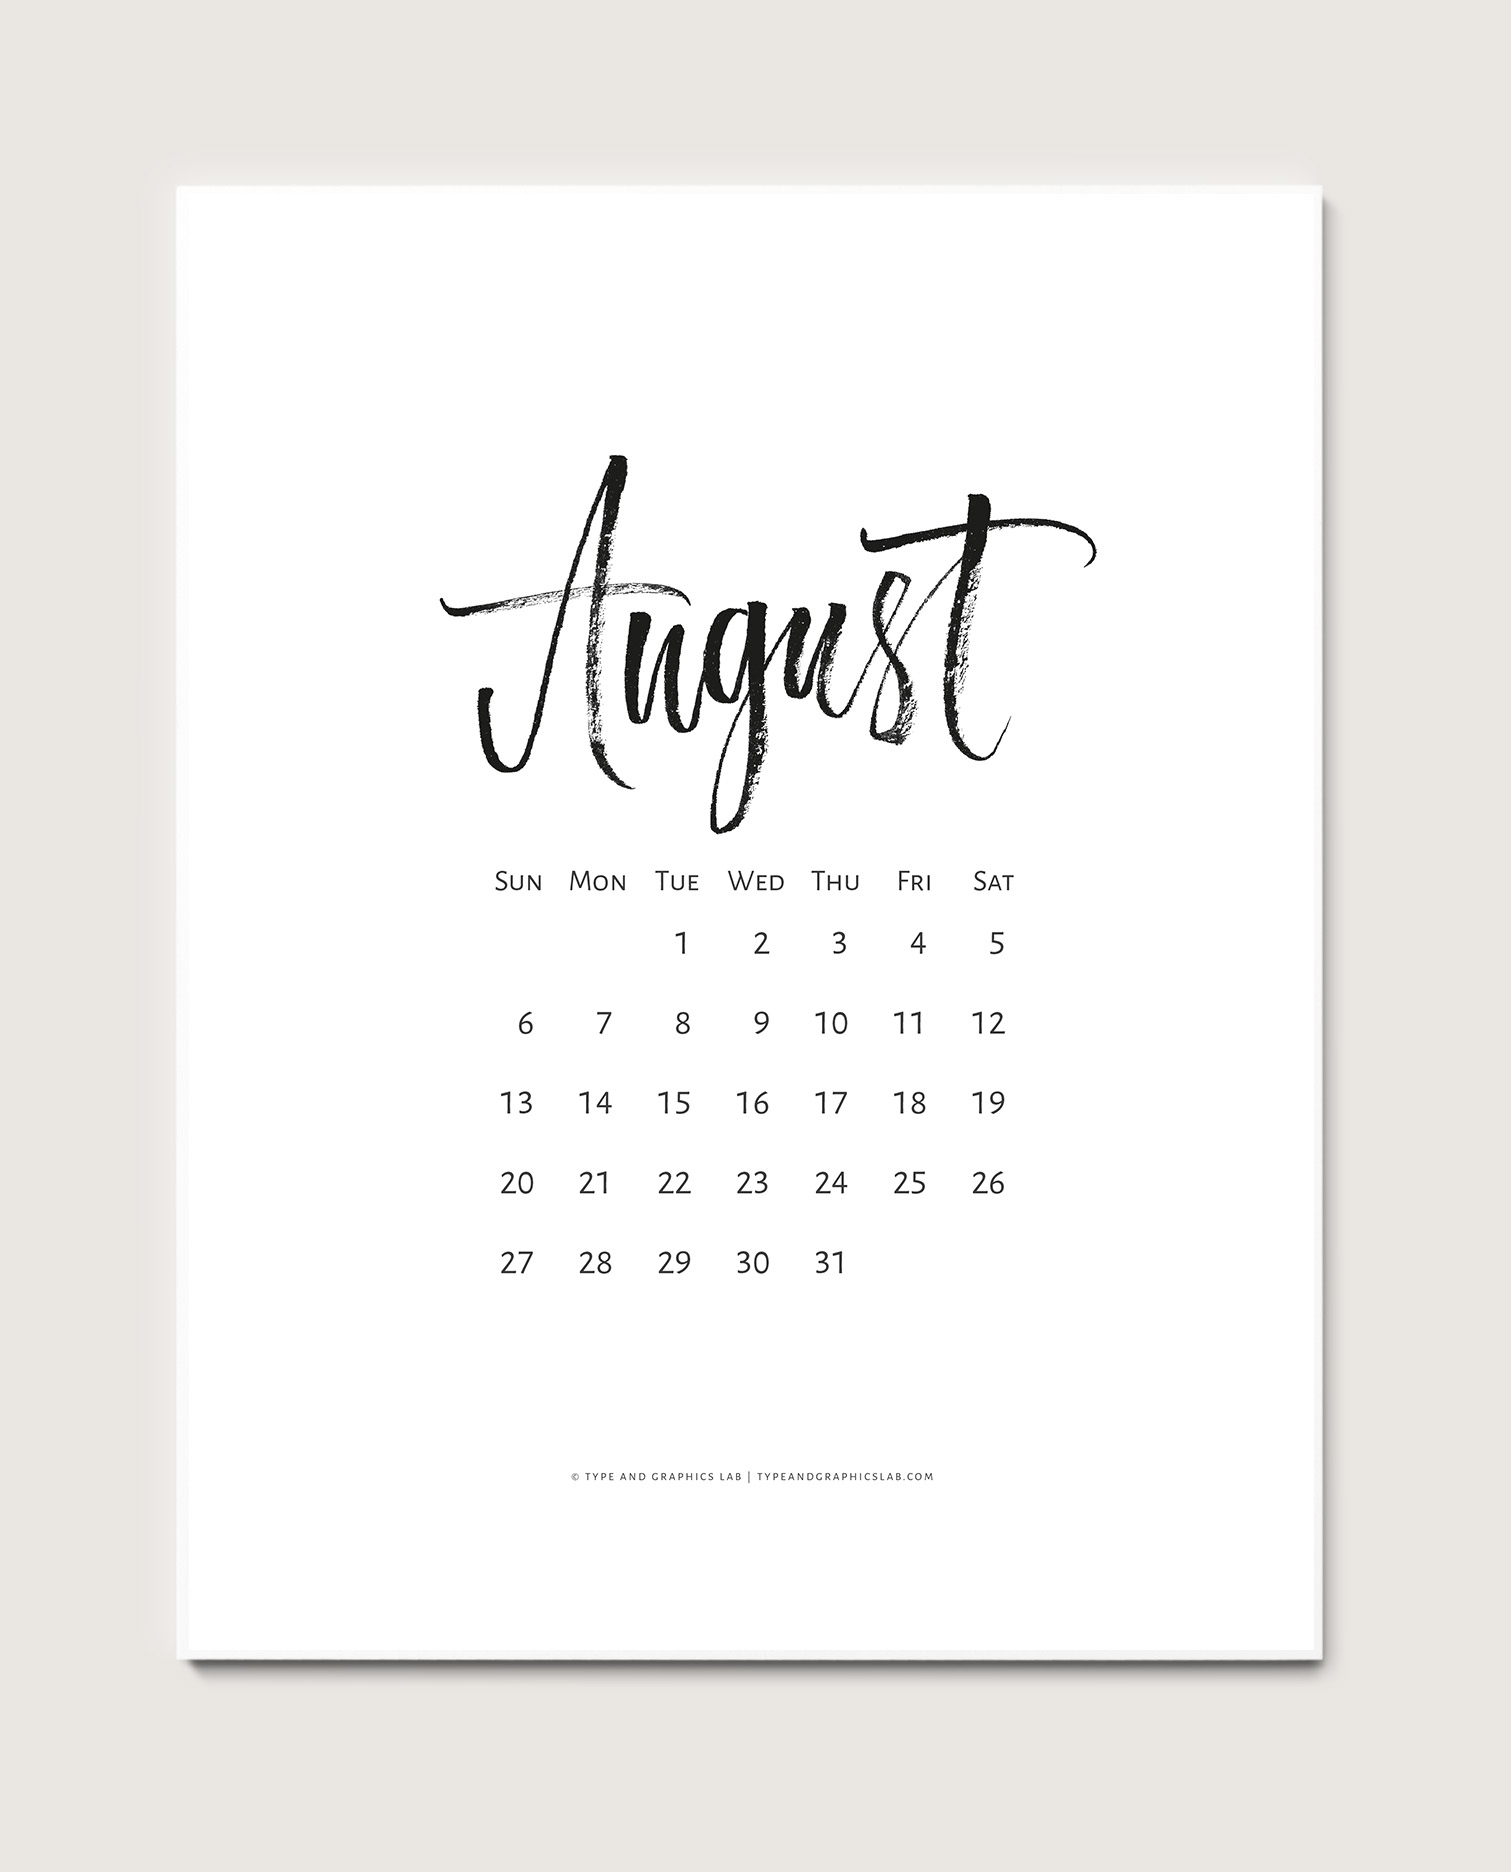 Download a free printable calendar for August 2017 |©typeandgraphicslab.com | For personal use only